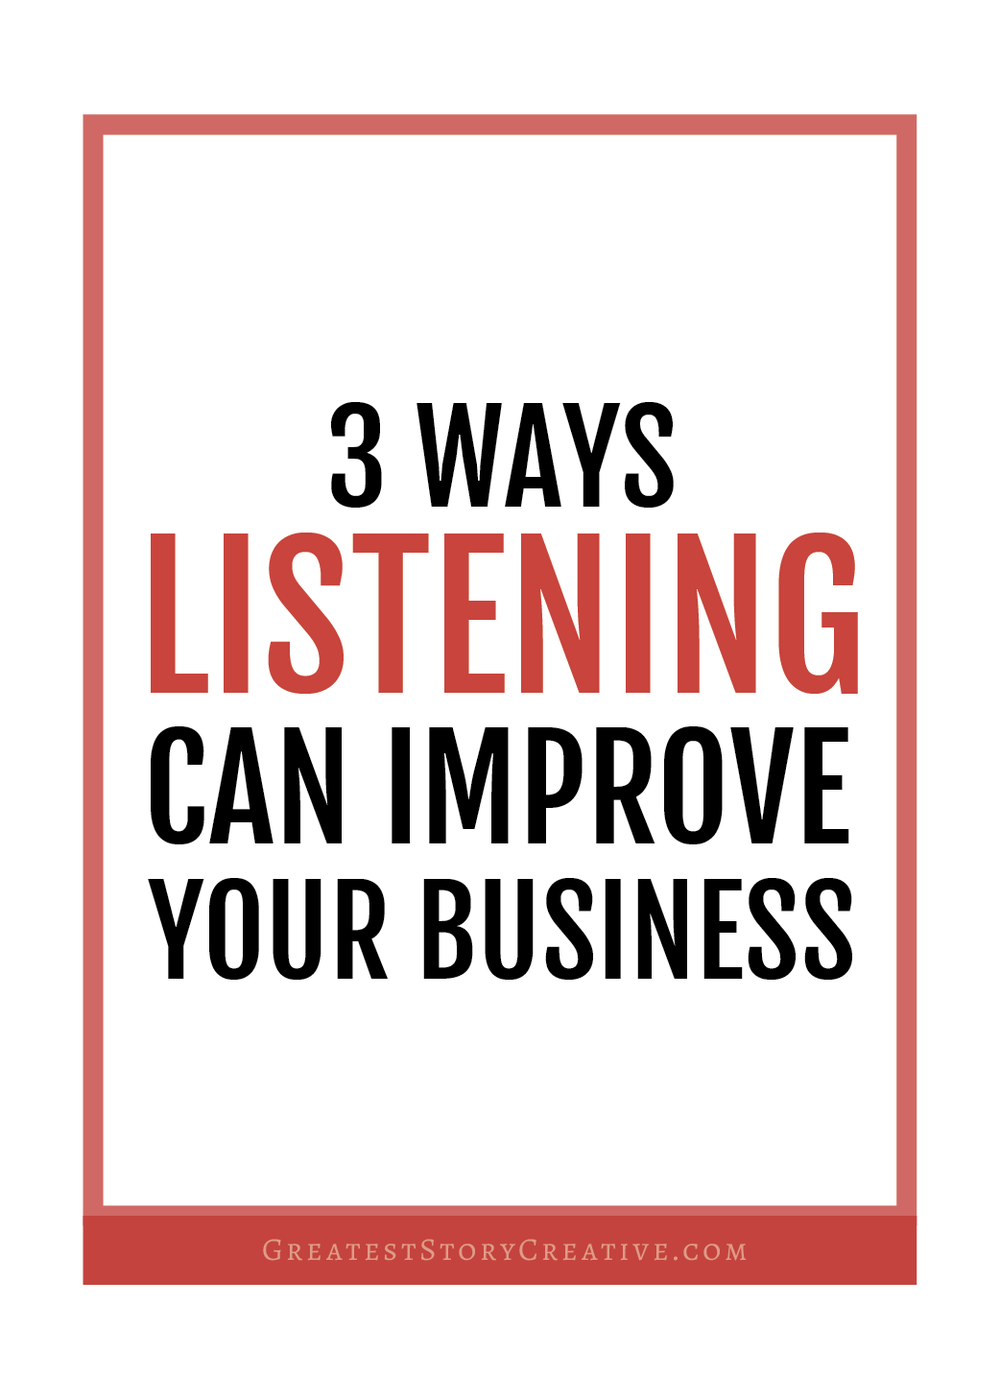 3 Ways Listening Can Improve Your Business - from Greatest Story for Business Blog